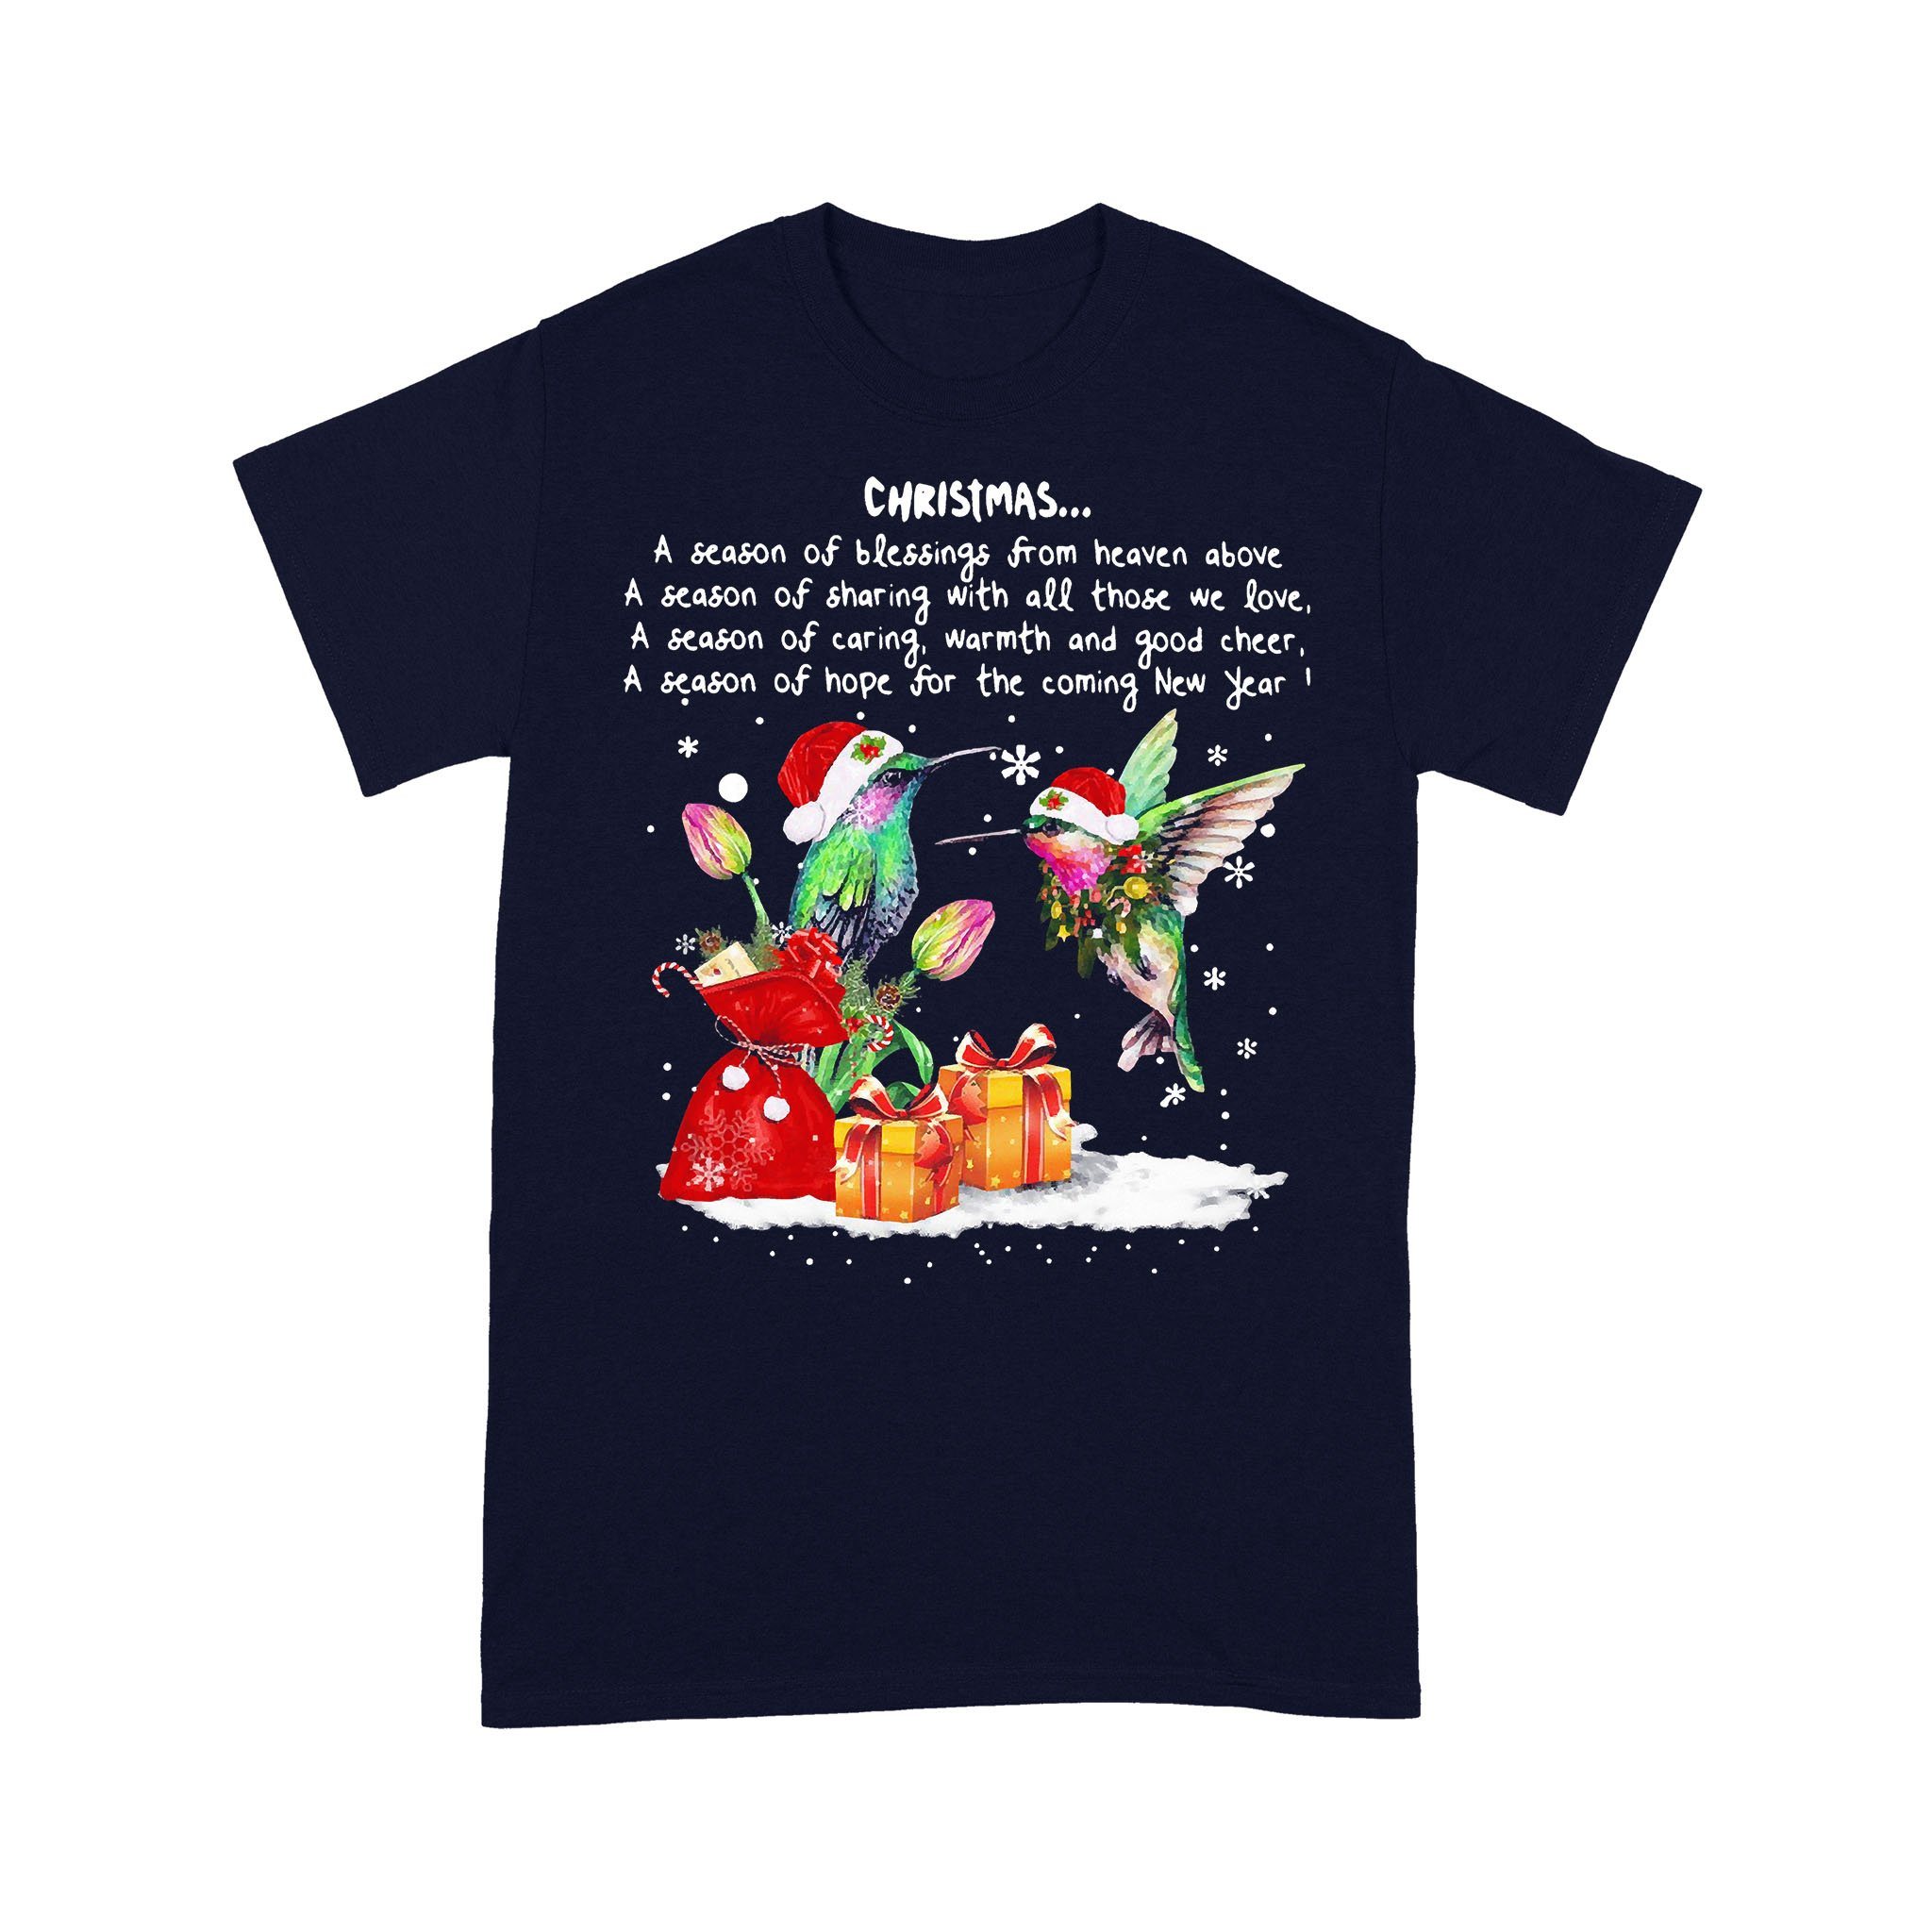 Hummingbird Christmas A Season Of T-shirt